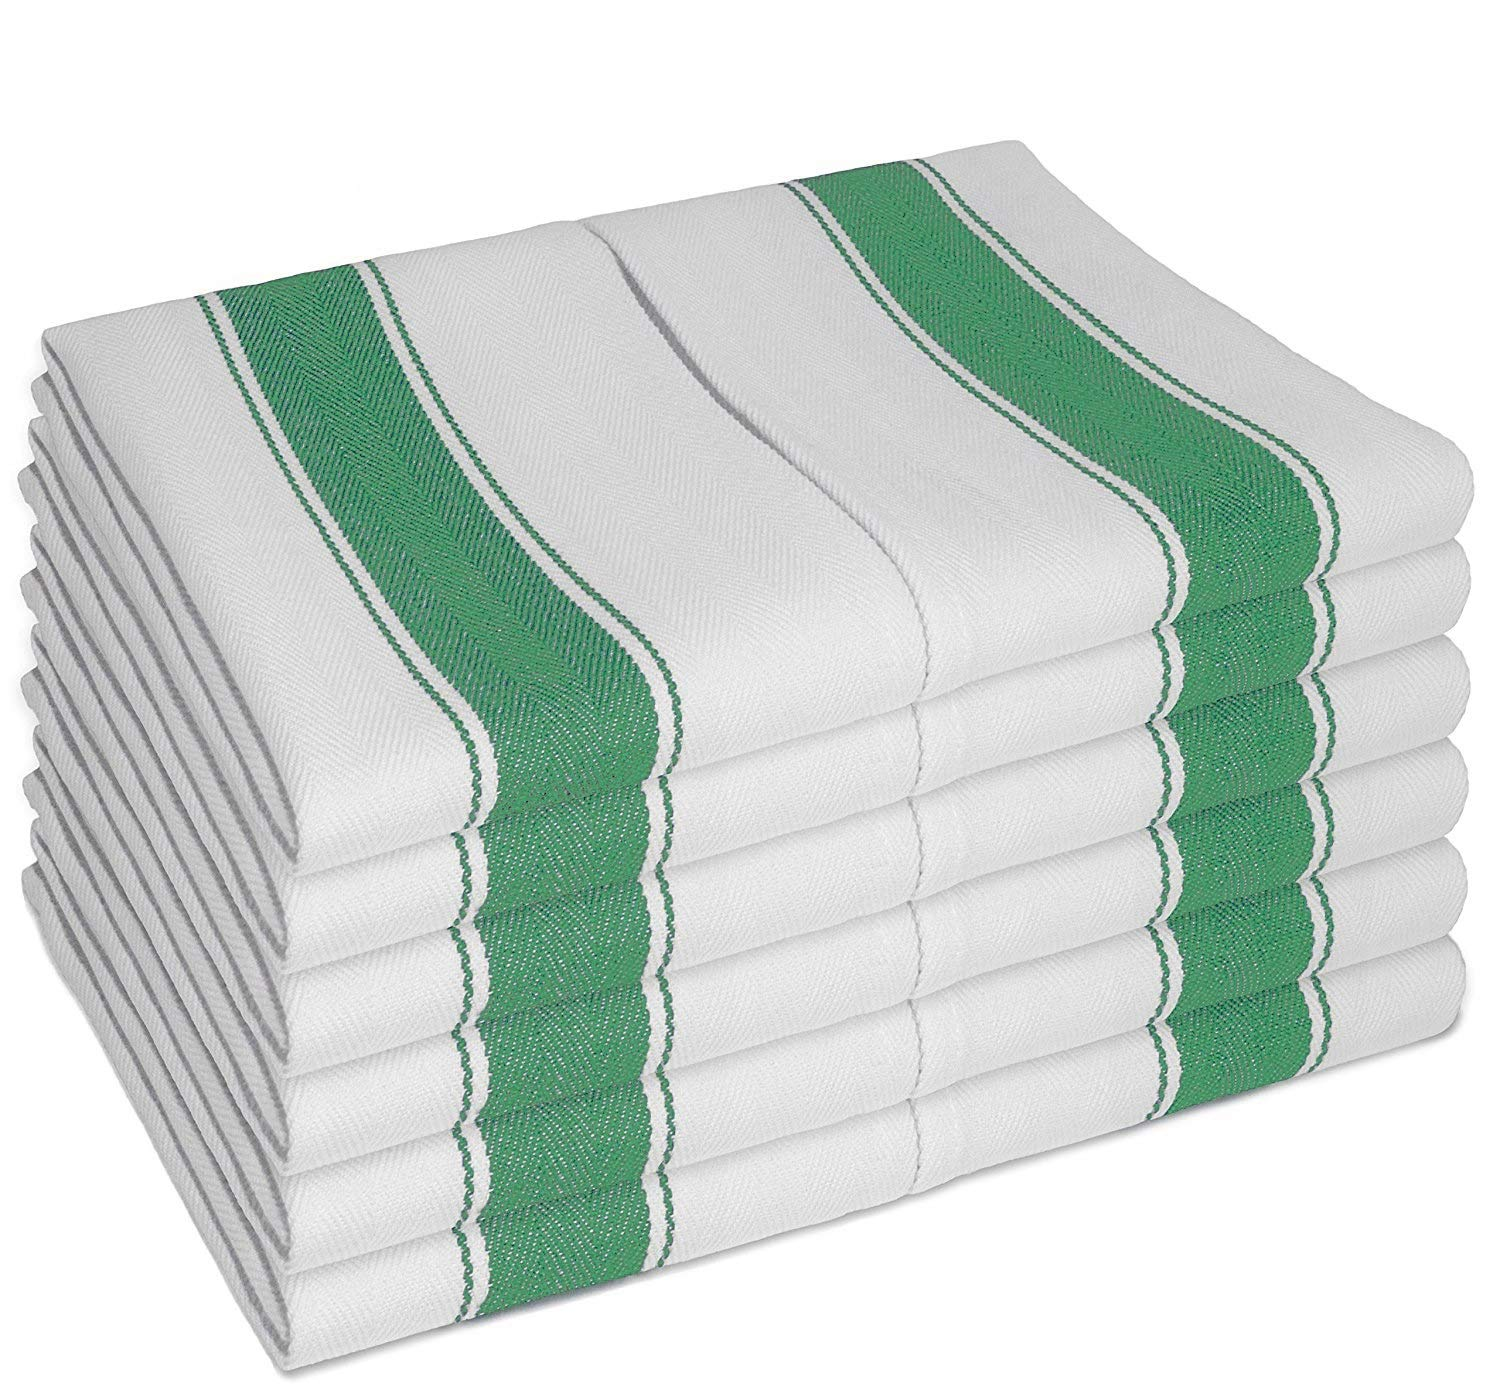 Vintage TEA TOWELS 12pk With Loop (100% Cotton Large 70X50 cm) - Longer Lasting, Super Absorbent In White with Green Stripes - Unique Herringbone Design for Fast Drying & Low Lint -